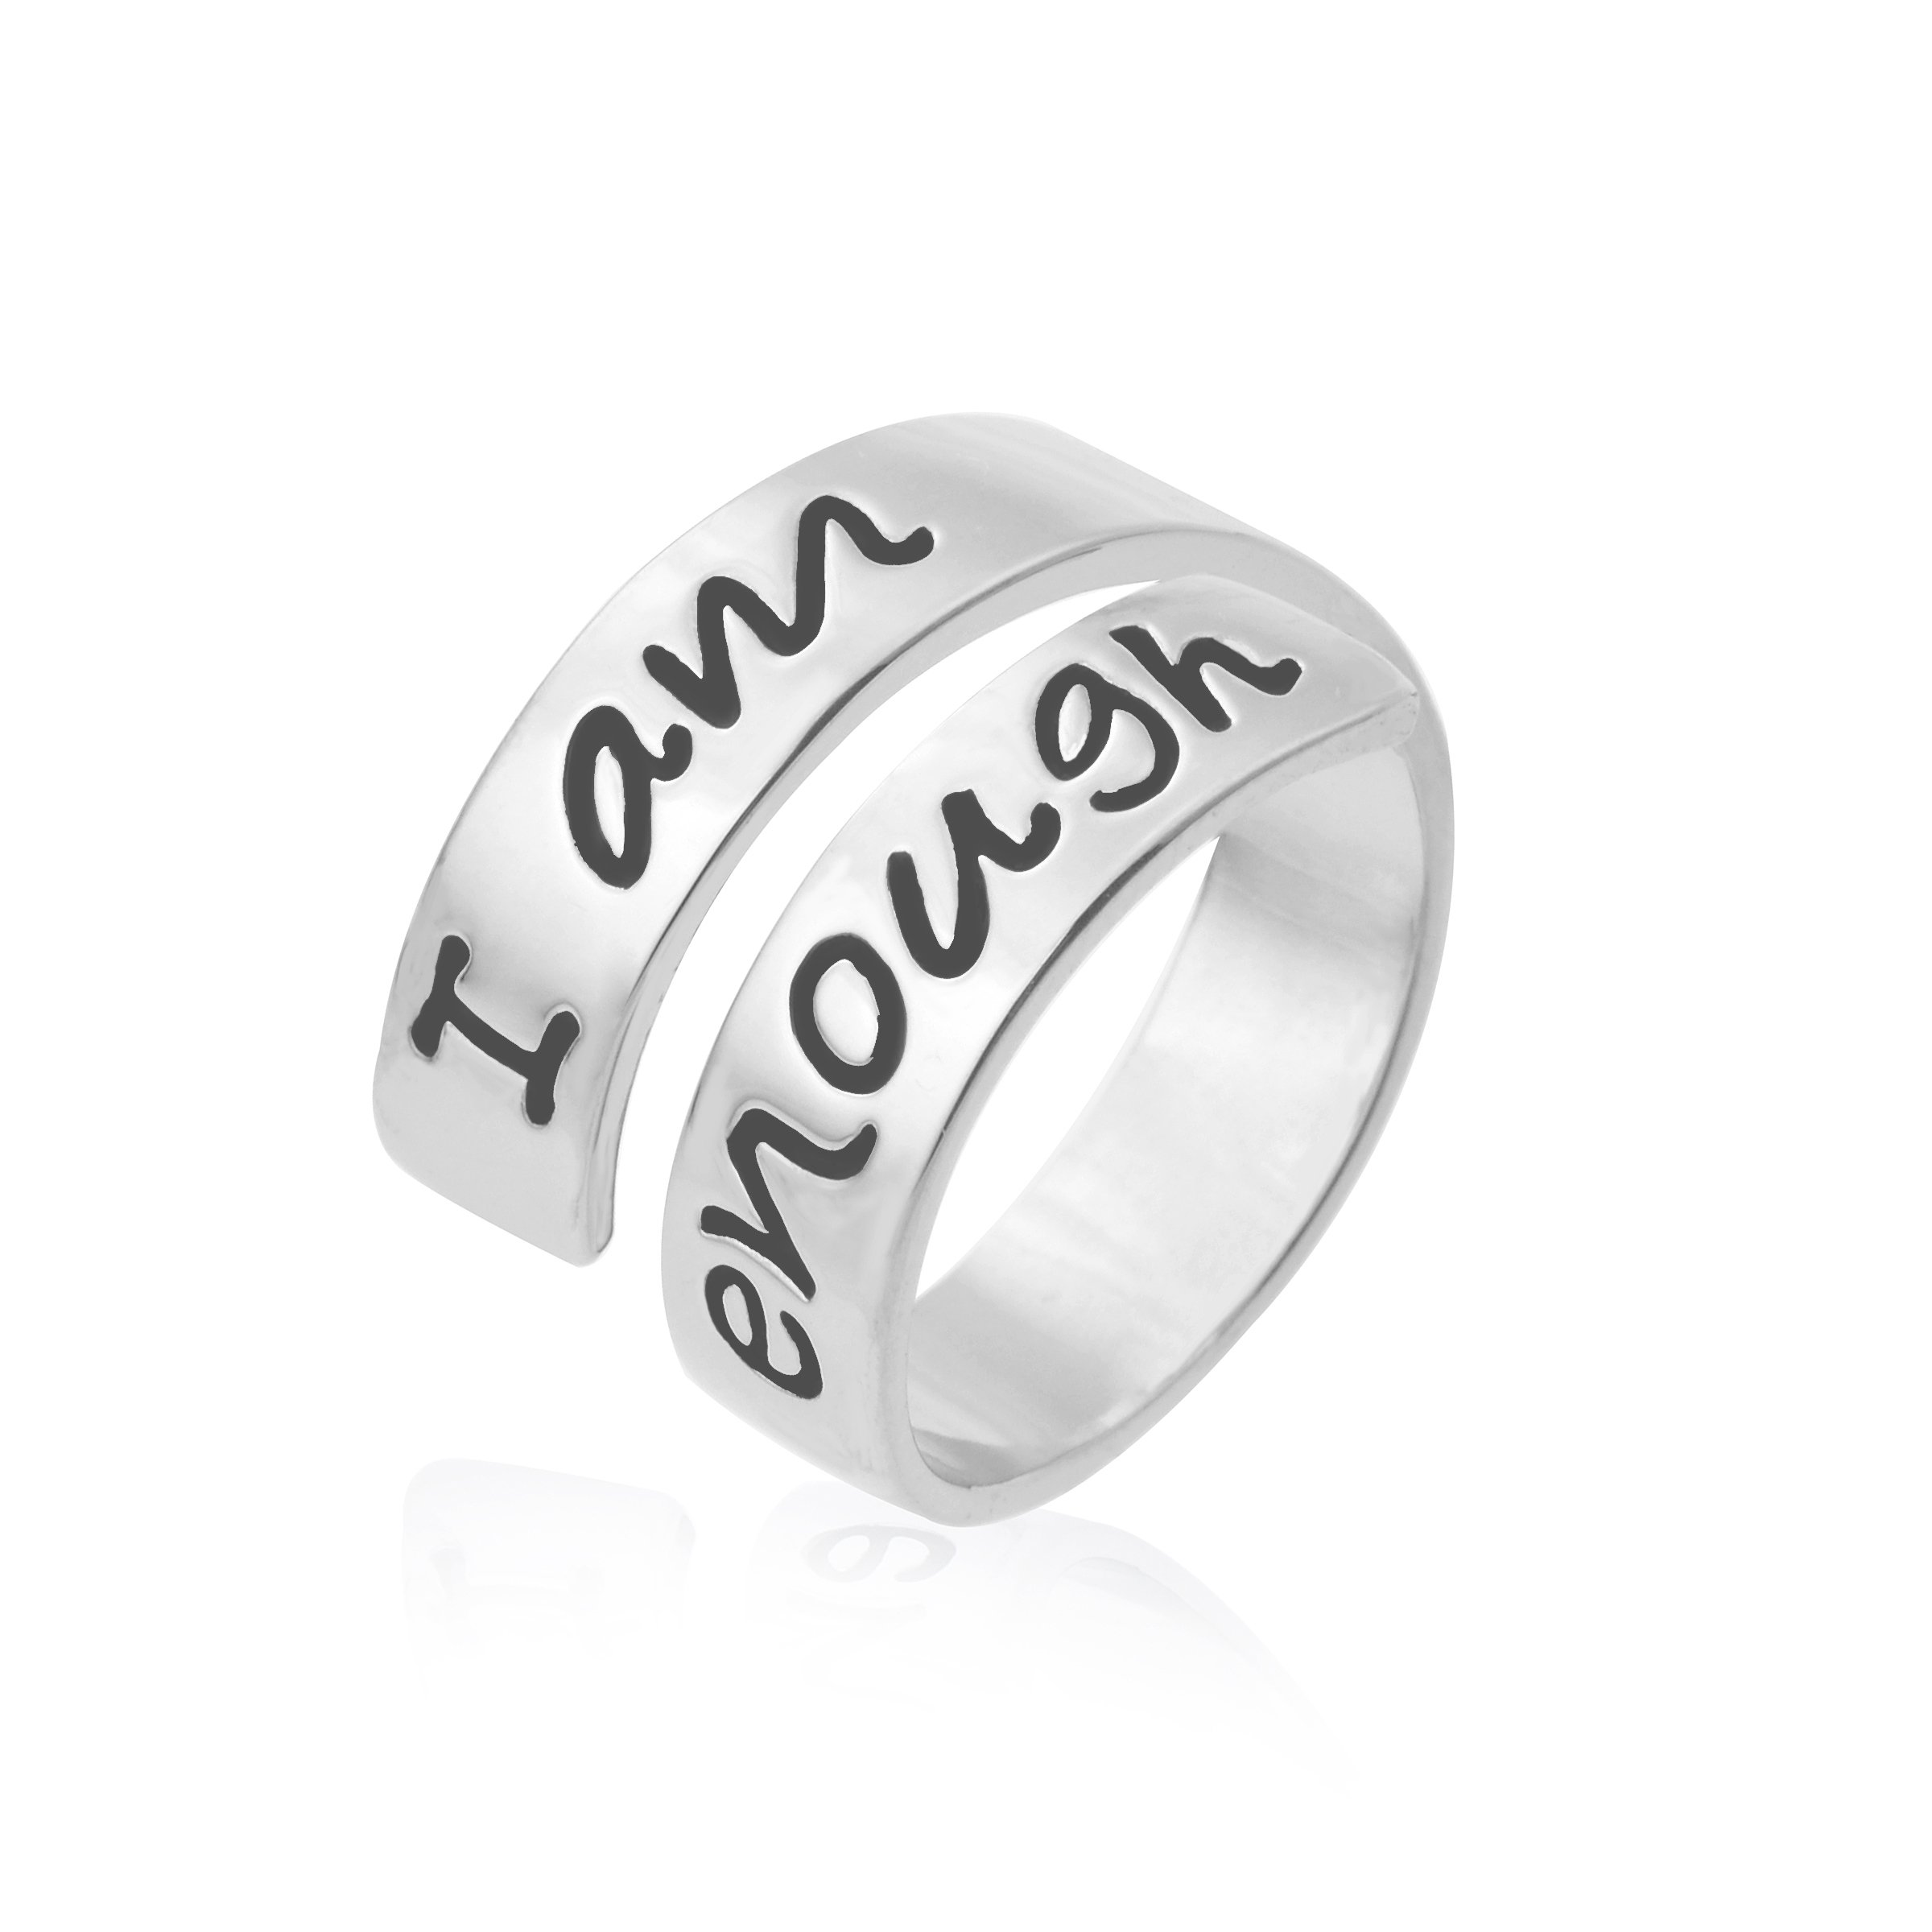 Yiyang Inspirational Ring for Women Adjustable Size Engraved Encouragement Message Rhodium Plating Jewelry Gift for Friends(I am enough)